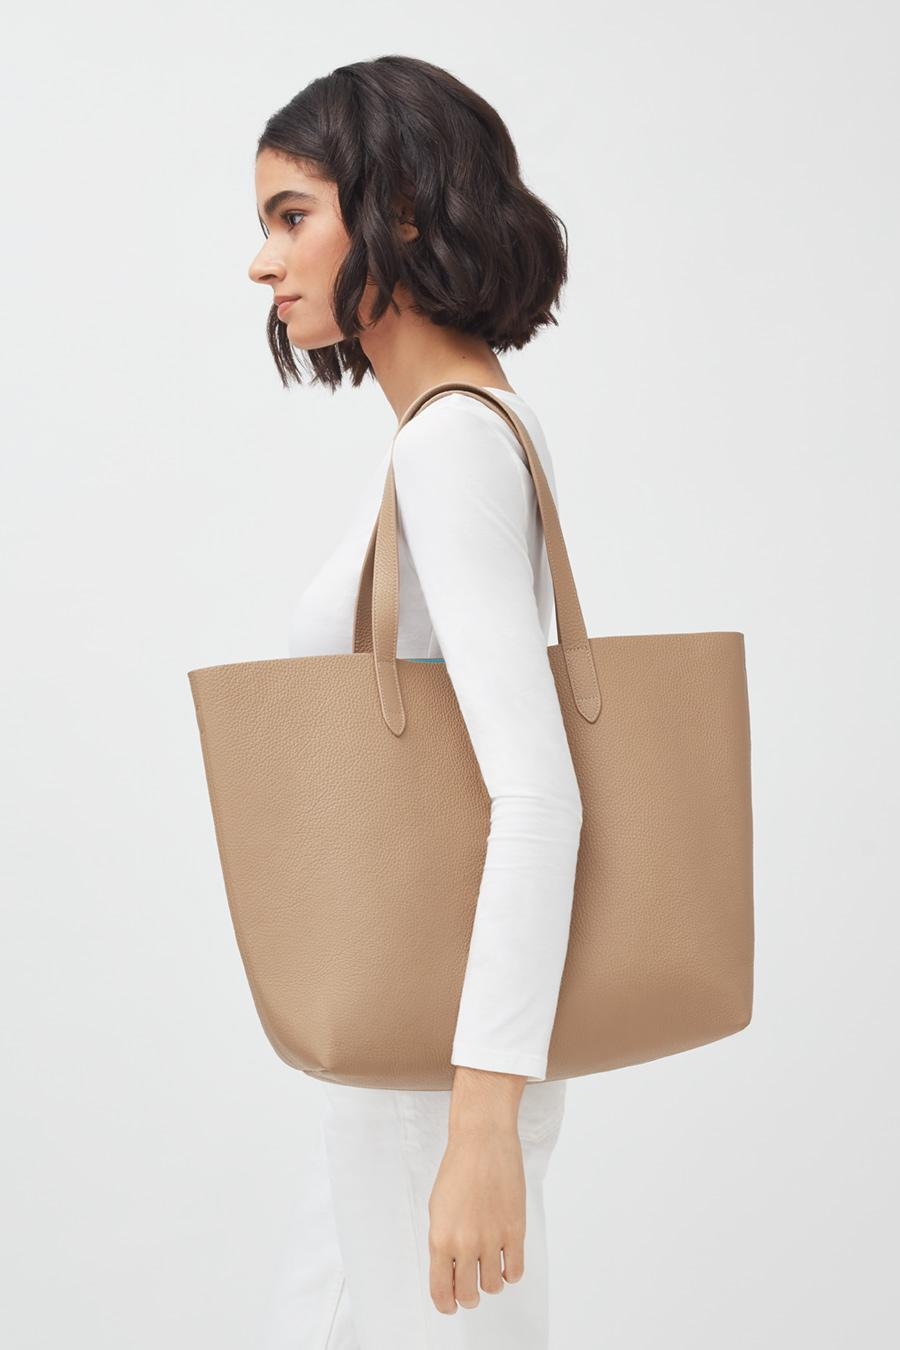 Women's Classic Structured Leather Tote Bag in Cappuccino/Blue | Pebbled Leather by Cuyana 4